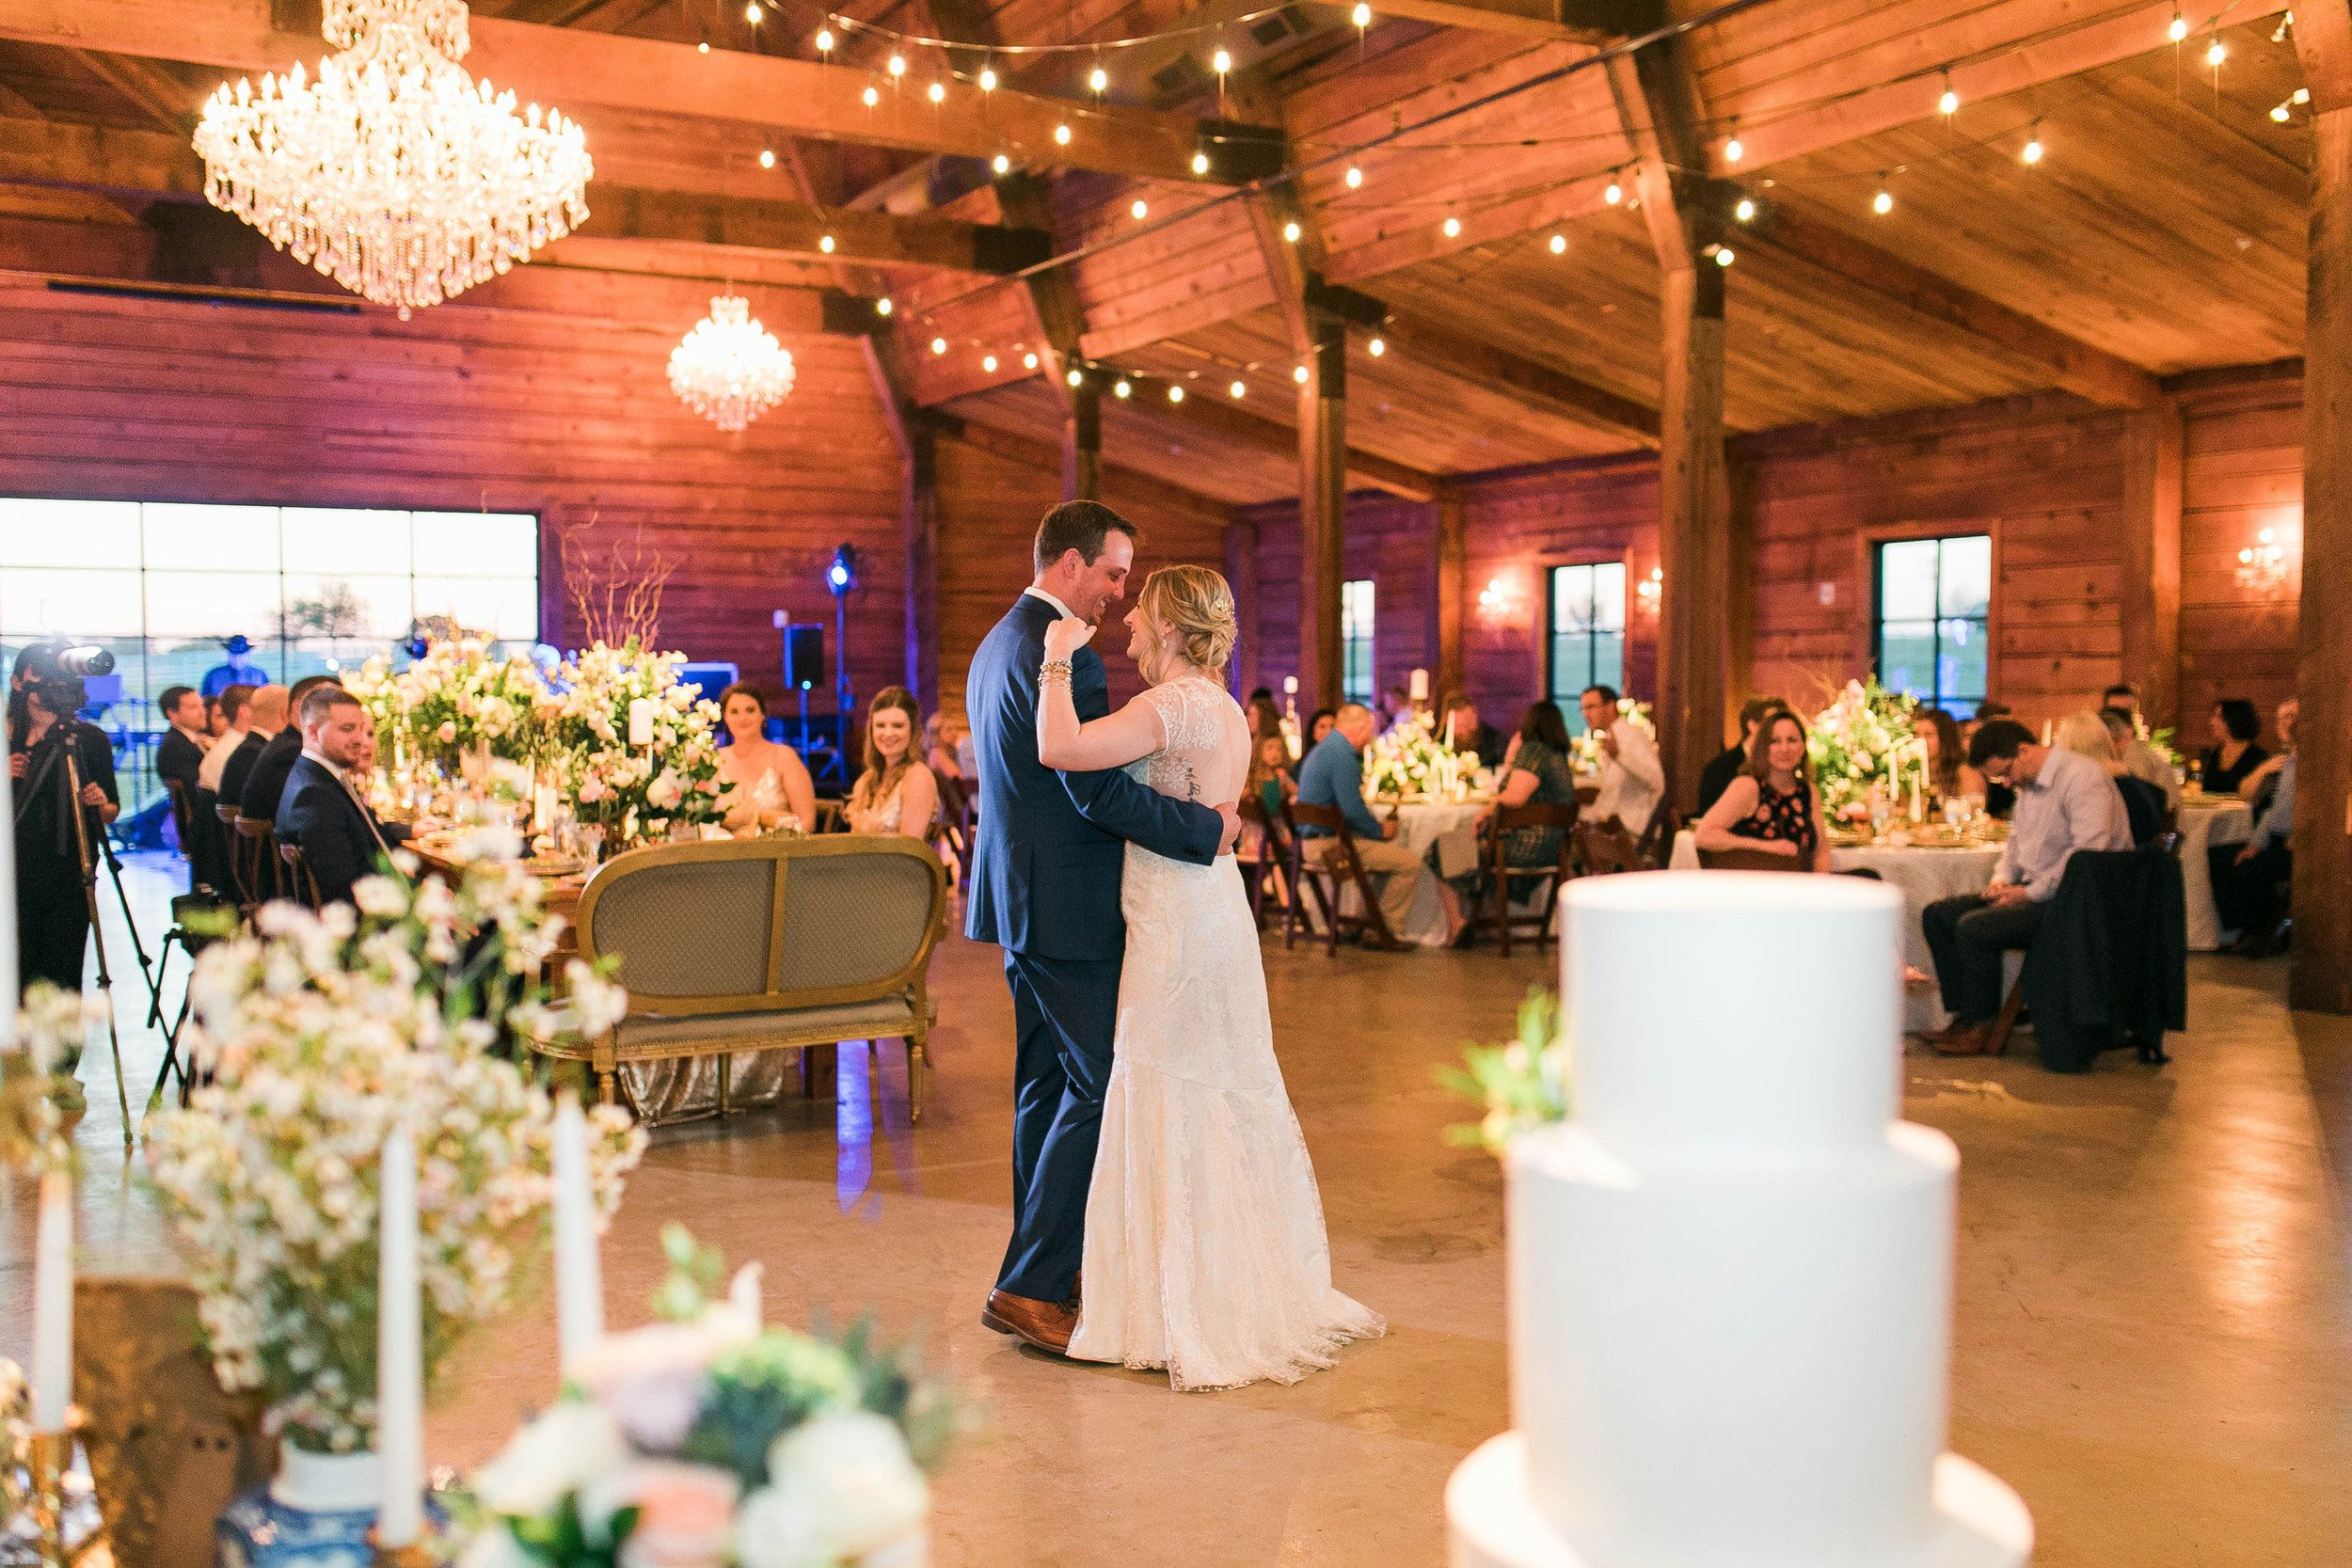 First Dance Reception With Settee Table Numbers Brass Candles Mismatched China Romantic Barn Wedding By R Blue And White Vase Flower Cart Barn Wedding